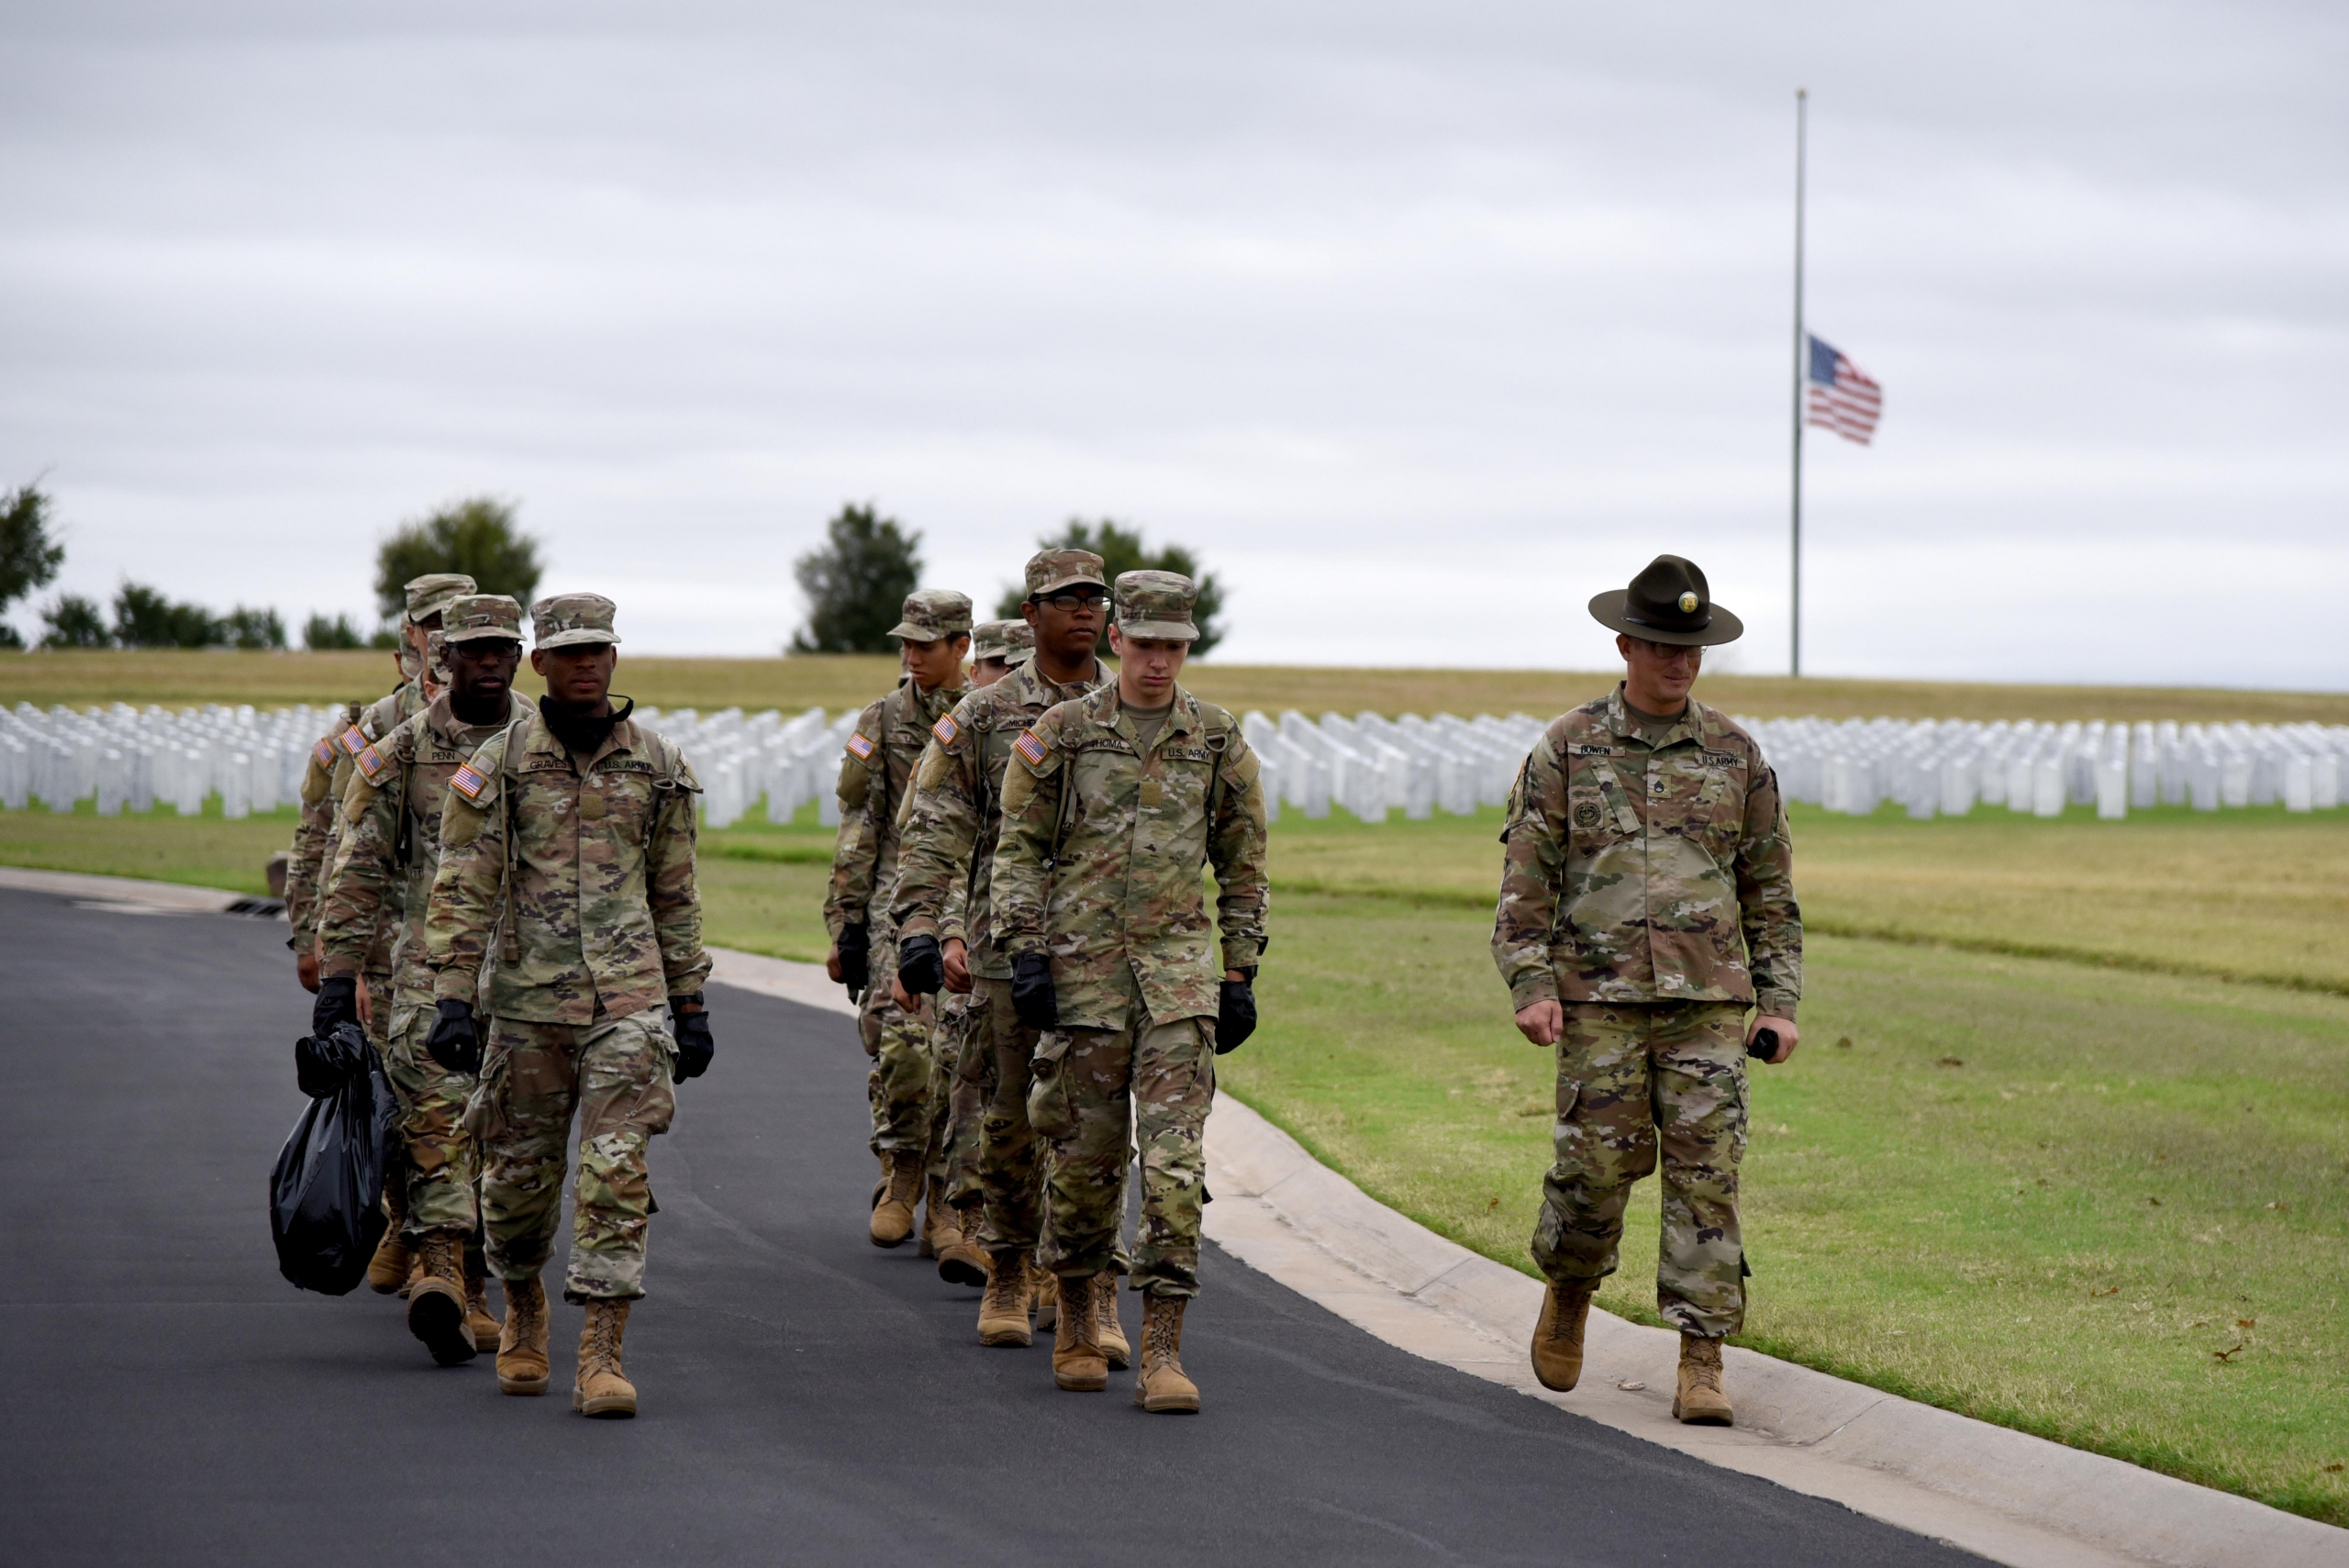 Army trainees honor the fallen at Fort Sill National Cemetery